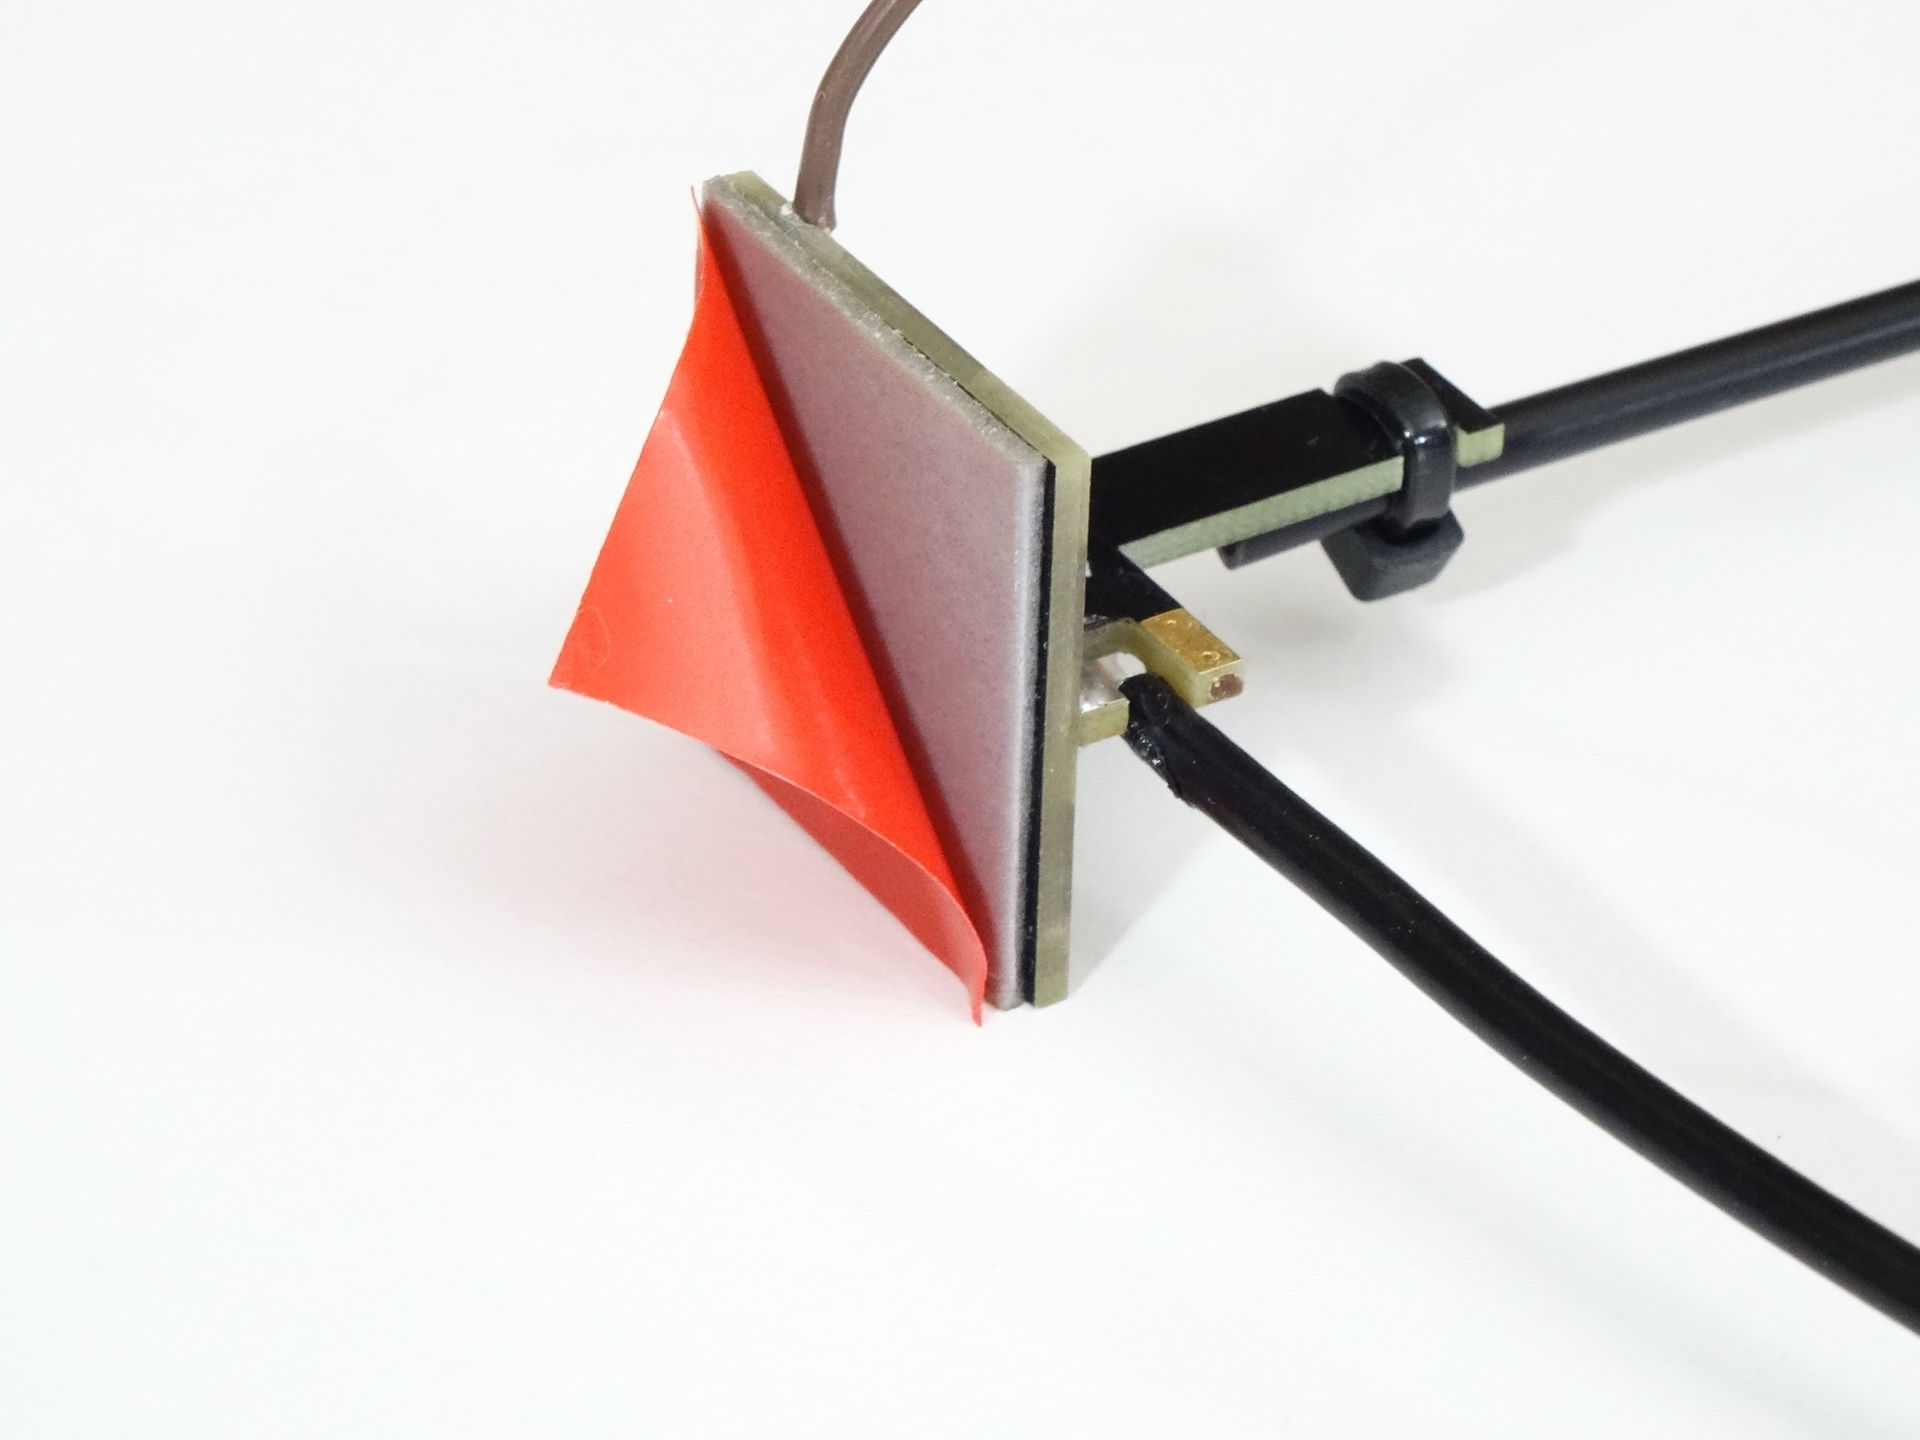 Picture of Dragon Link Receiver Antenna - 12 Inch ( 30 CM ) Copter Mount SMA Connector